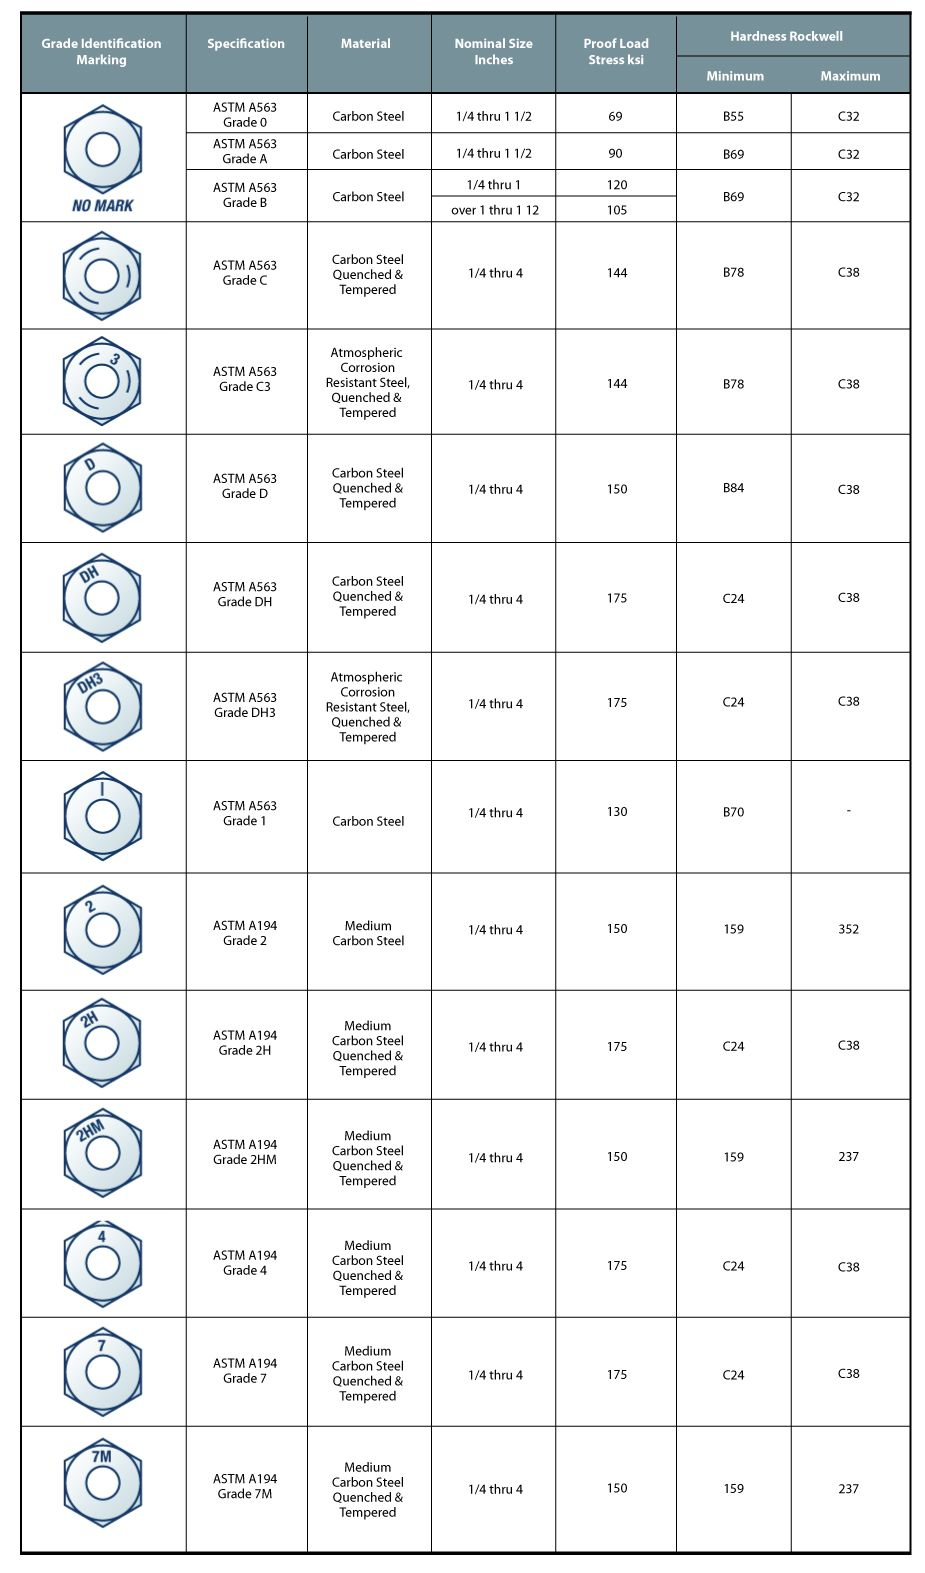 Stainless Steel Bolt Grades Chart : stainless, steel, grades, chart, Fastener, Markings, Bolts, Metal, Lathe, Tools,, Chart, Tool,, Screws